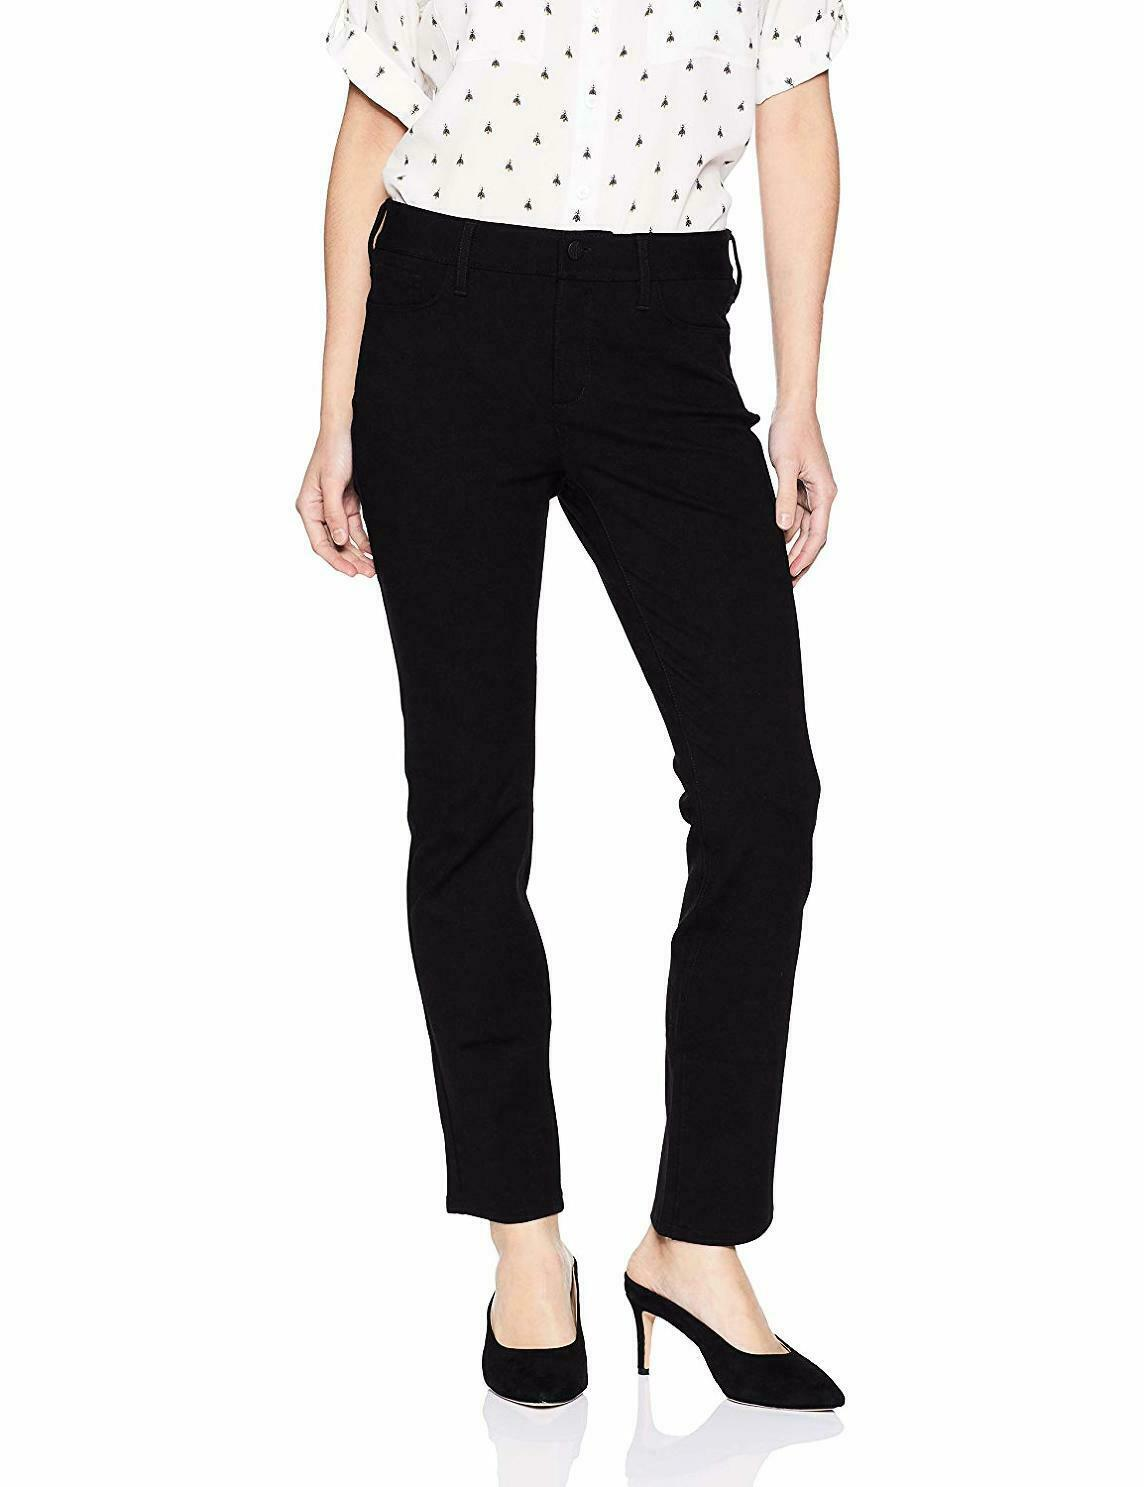 NYDJ Women's Petite SZ Sheri Slim Jean - Choose SZ color